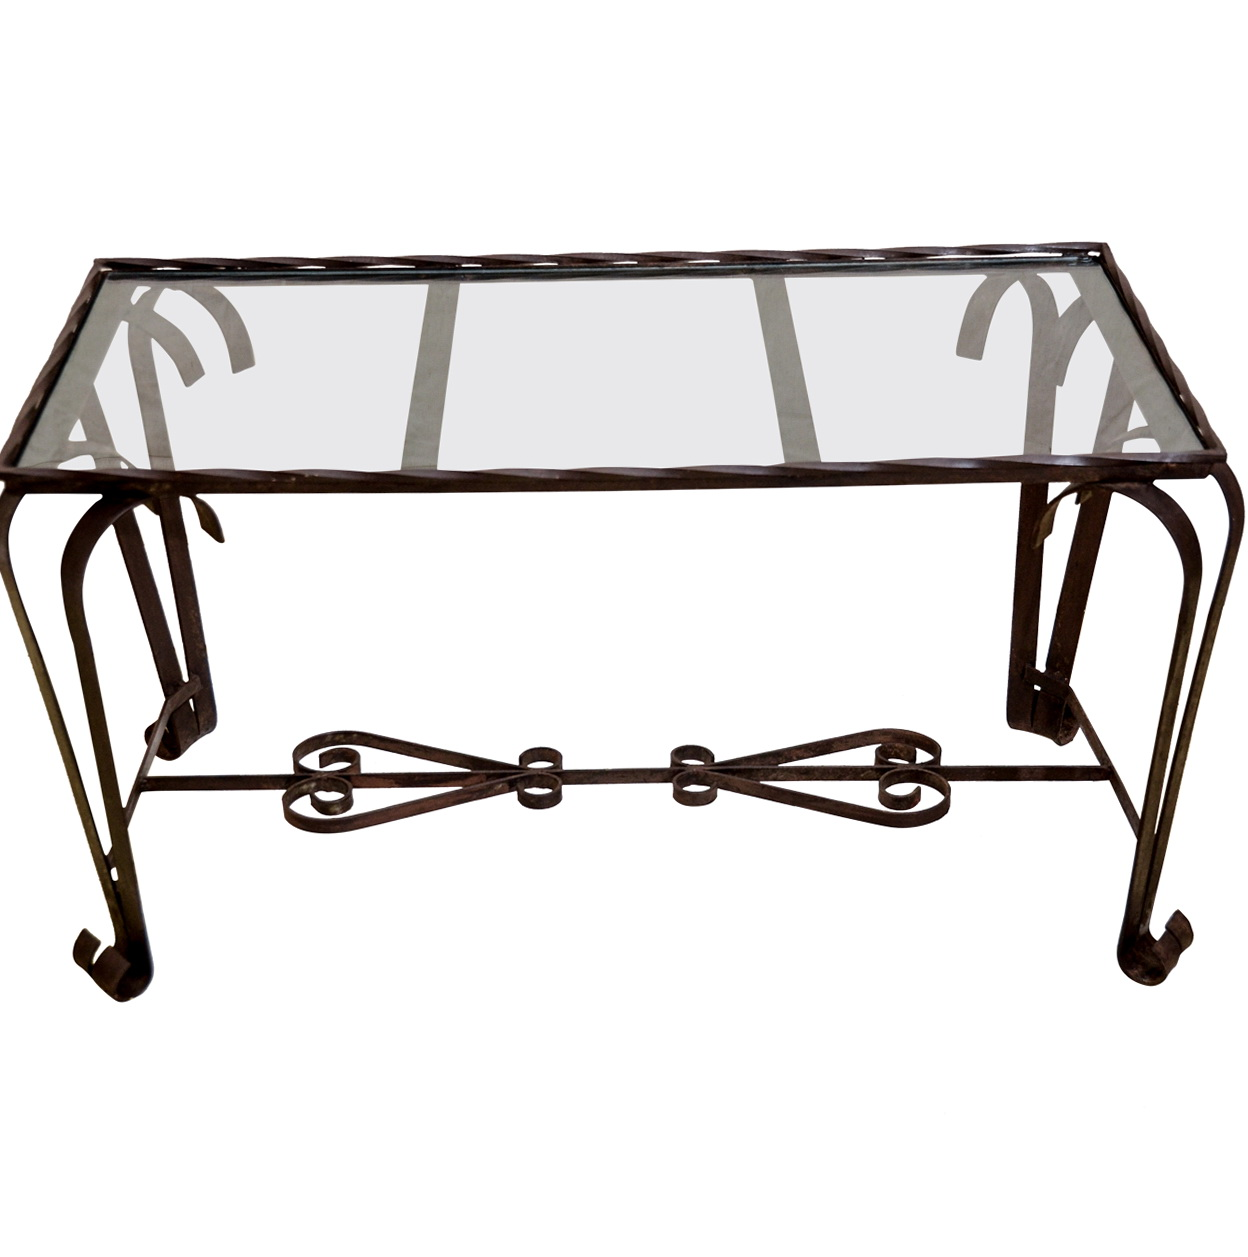 Wrought Iron Console Table With Glass Top